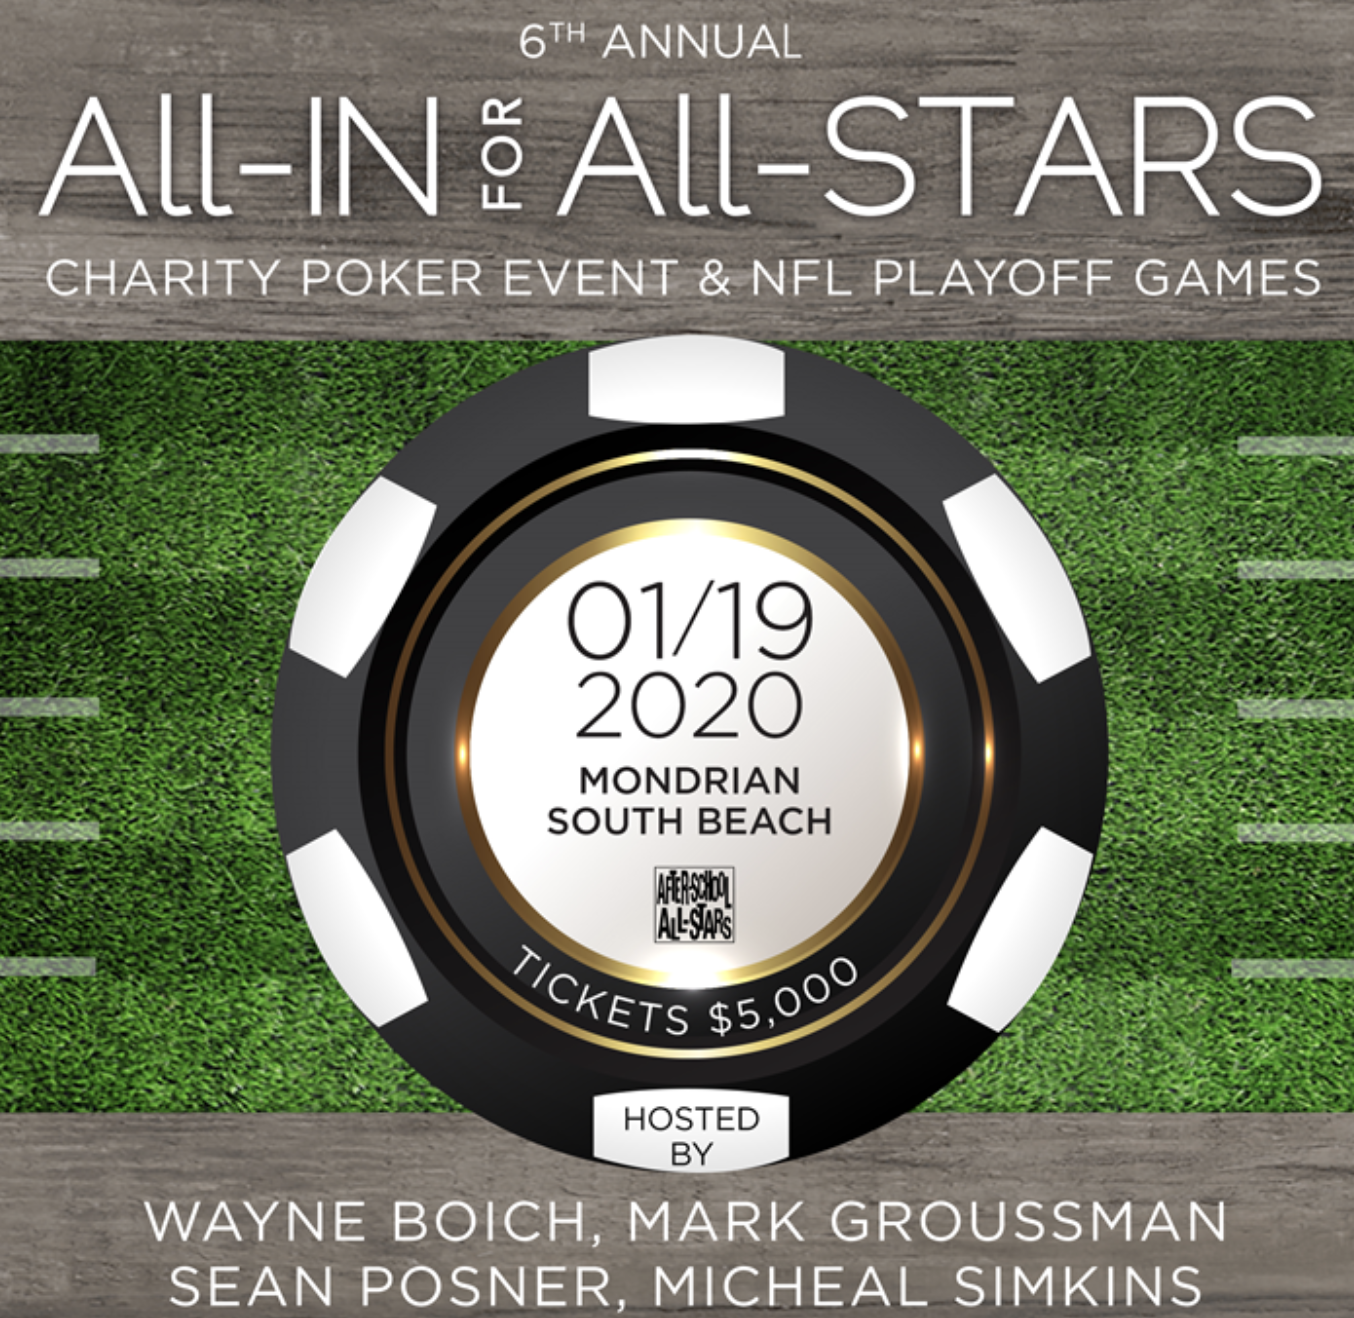 Nfl Playoff Games 2020.All In For All Stars Charity Poker Event Nfl Playoff Games